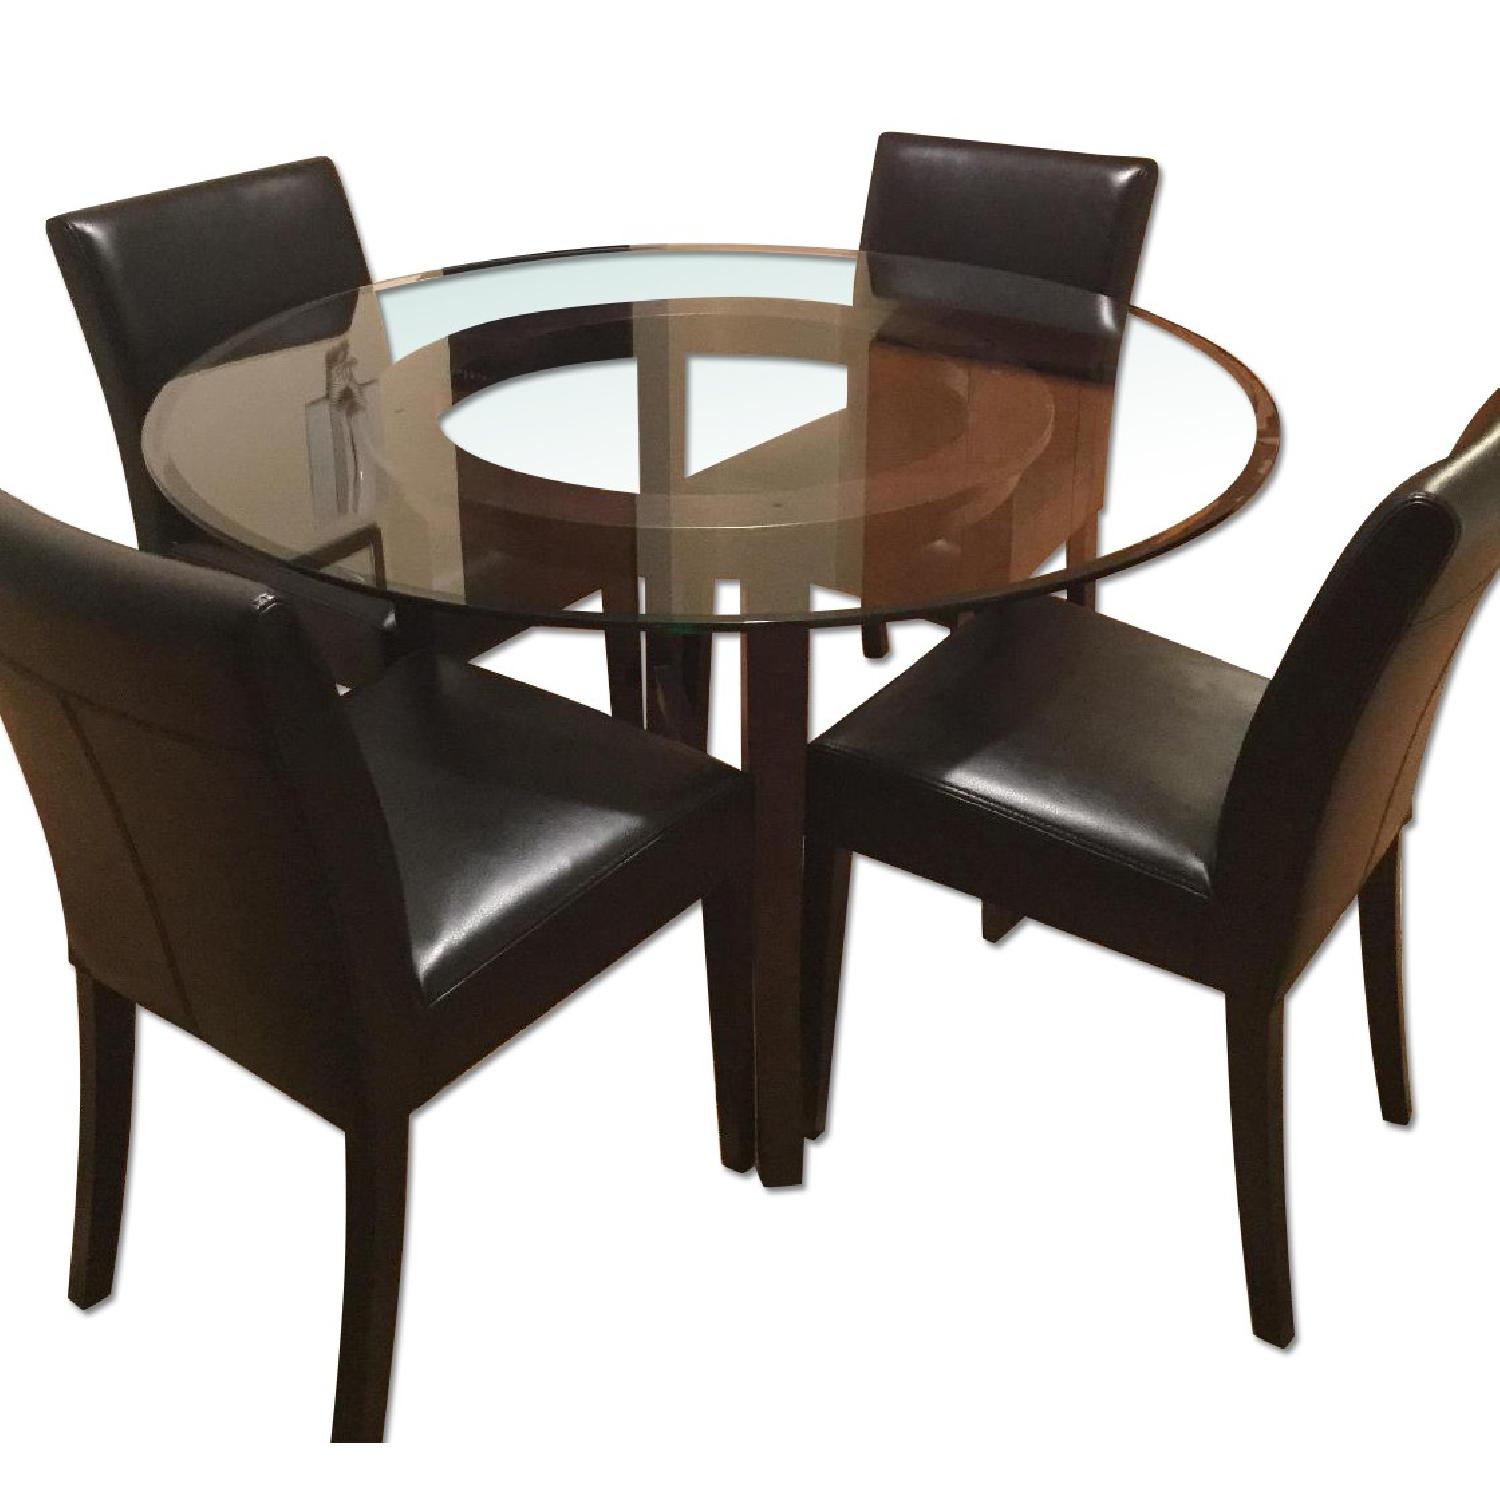 Crate & Barrel Glass Dining Table w/ 4 Black Leather Chairs - image-0